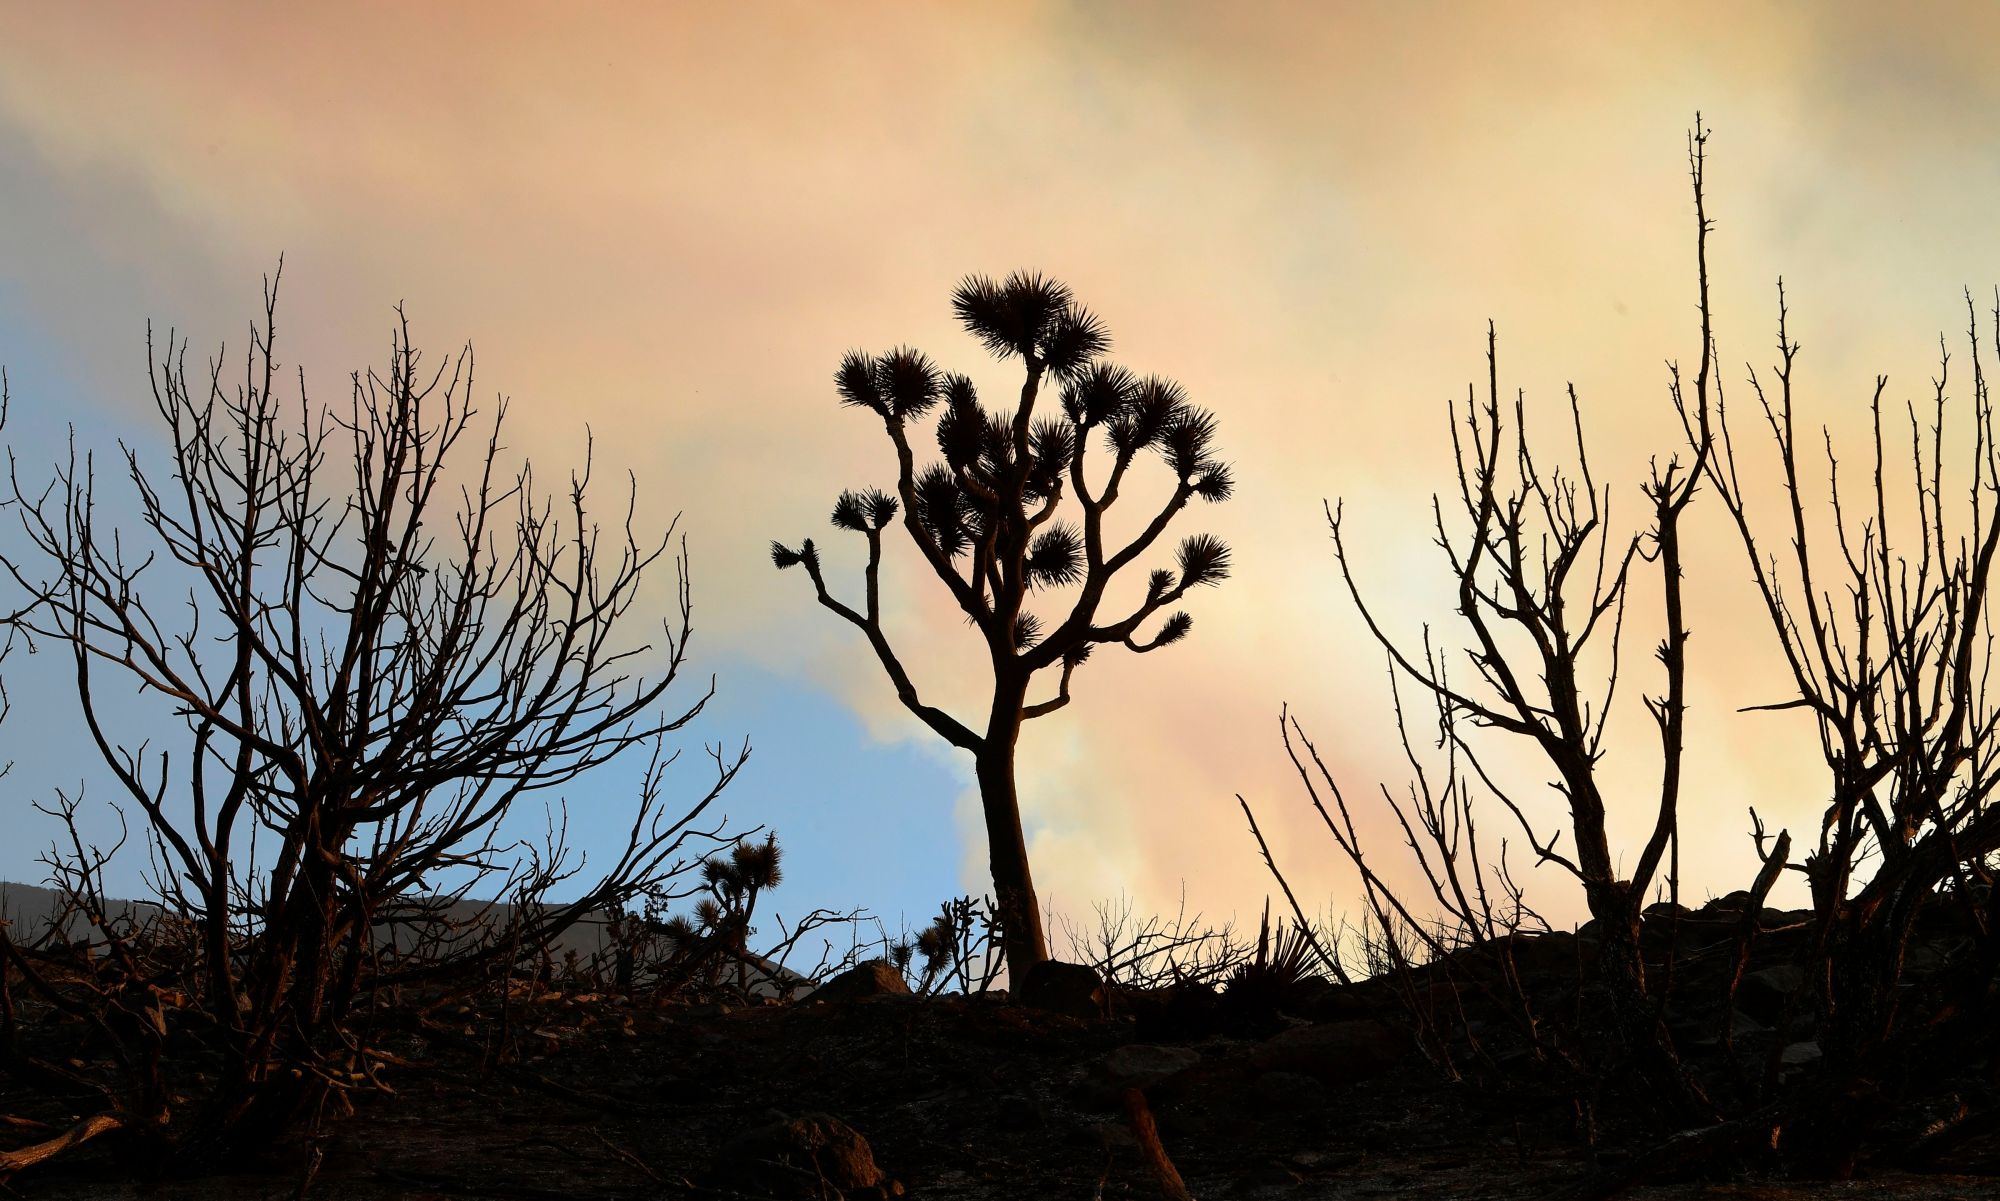 Fire-ravaged desert plants like the Joshua Tree (C) line a scorched landscape from the Bobcat Fire in the Mojave Desert community of Juniper Hills, Calif. on Sept. 19, 2020. (FREDERIC J. BROWN/AFP via Getty Images)